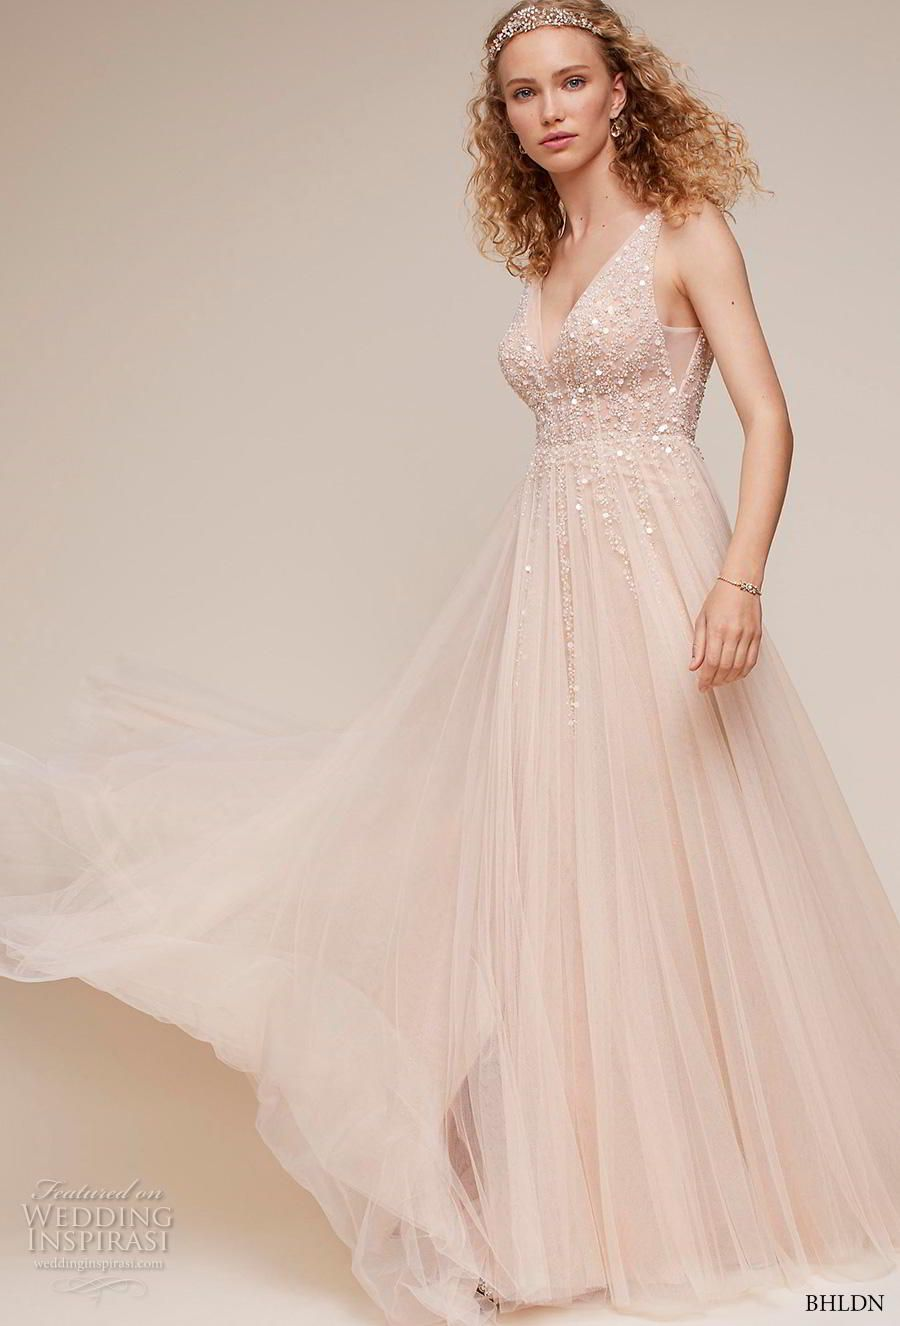 Effortless style with bhldnus own wedding dress collection